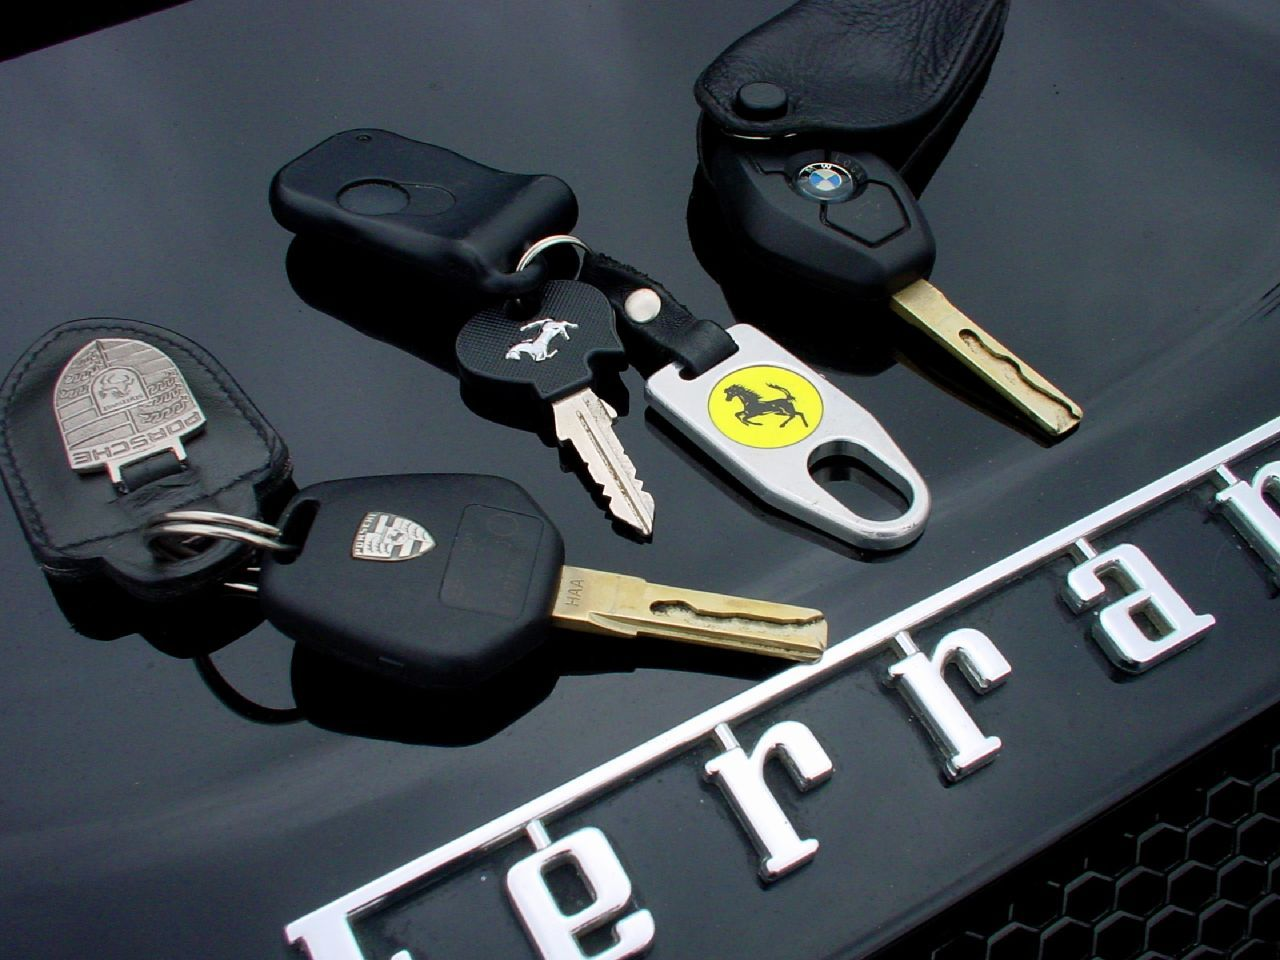 Visit our site http//www.autokeygroup.co.uk/ for more